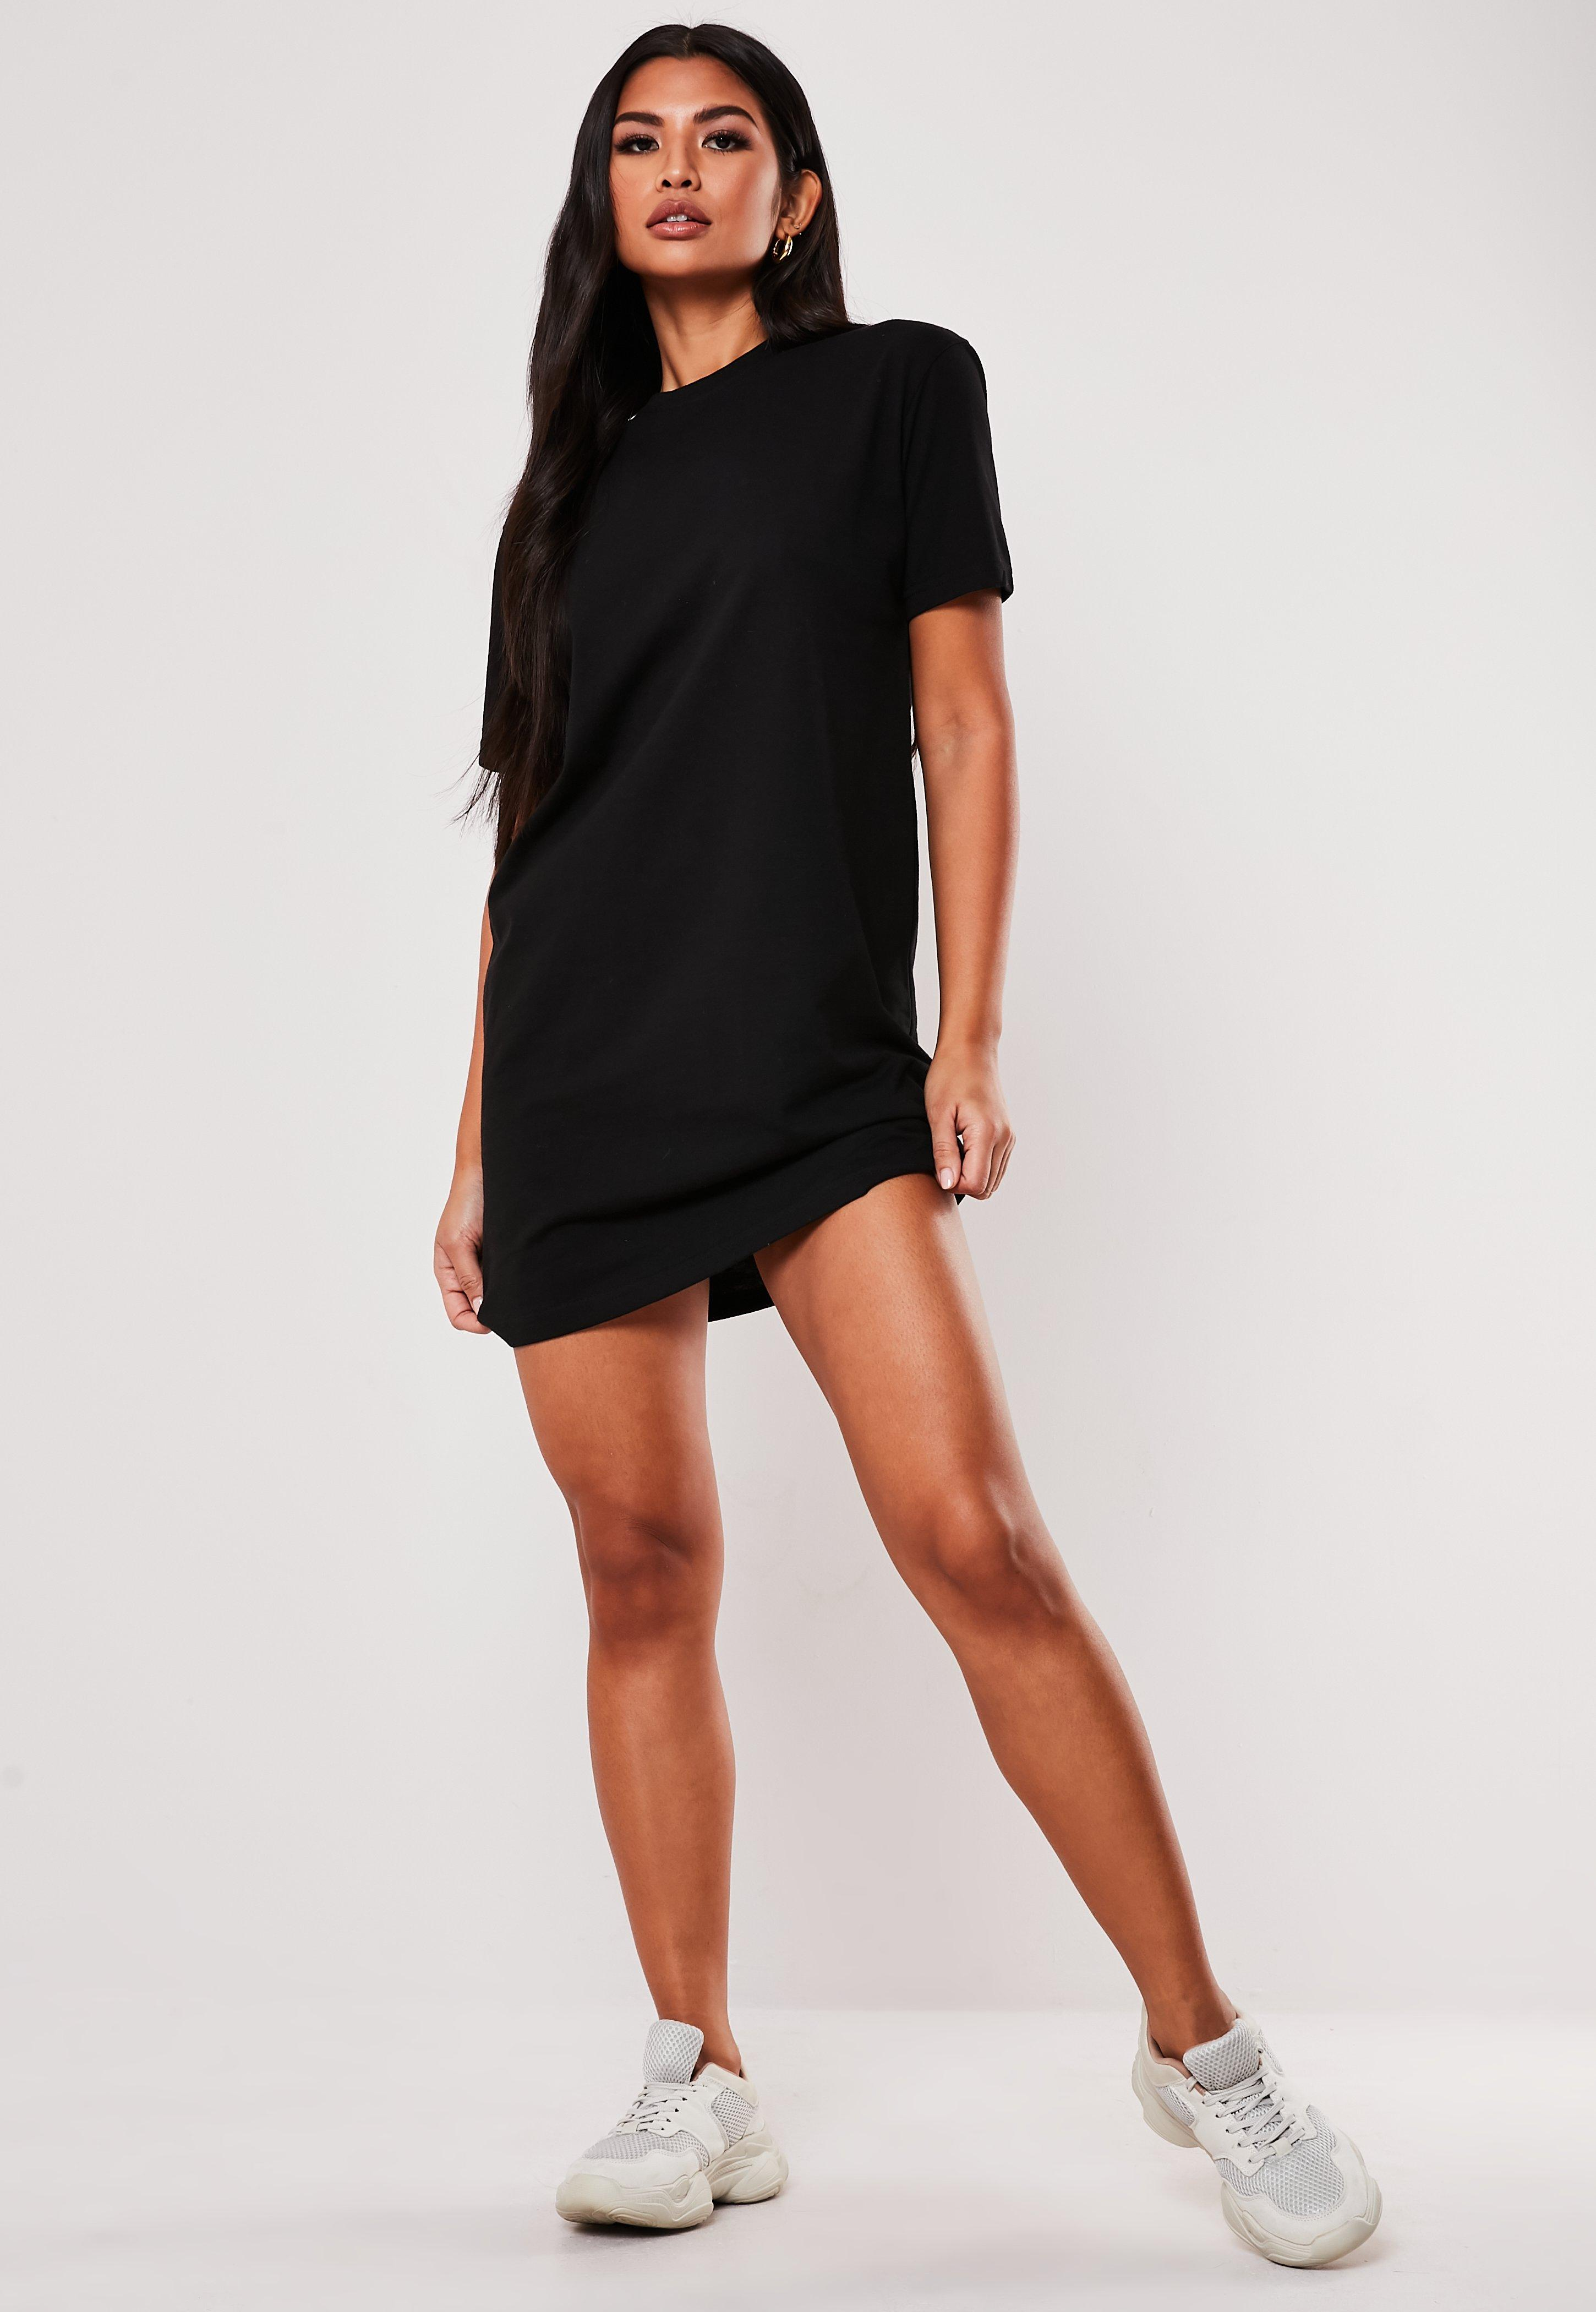 65f3dcb7b2a6 Little Black Dresses | Black Dresses & LBDs - Missguided